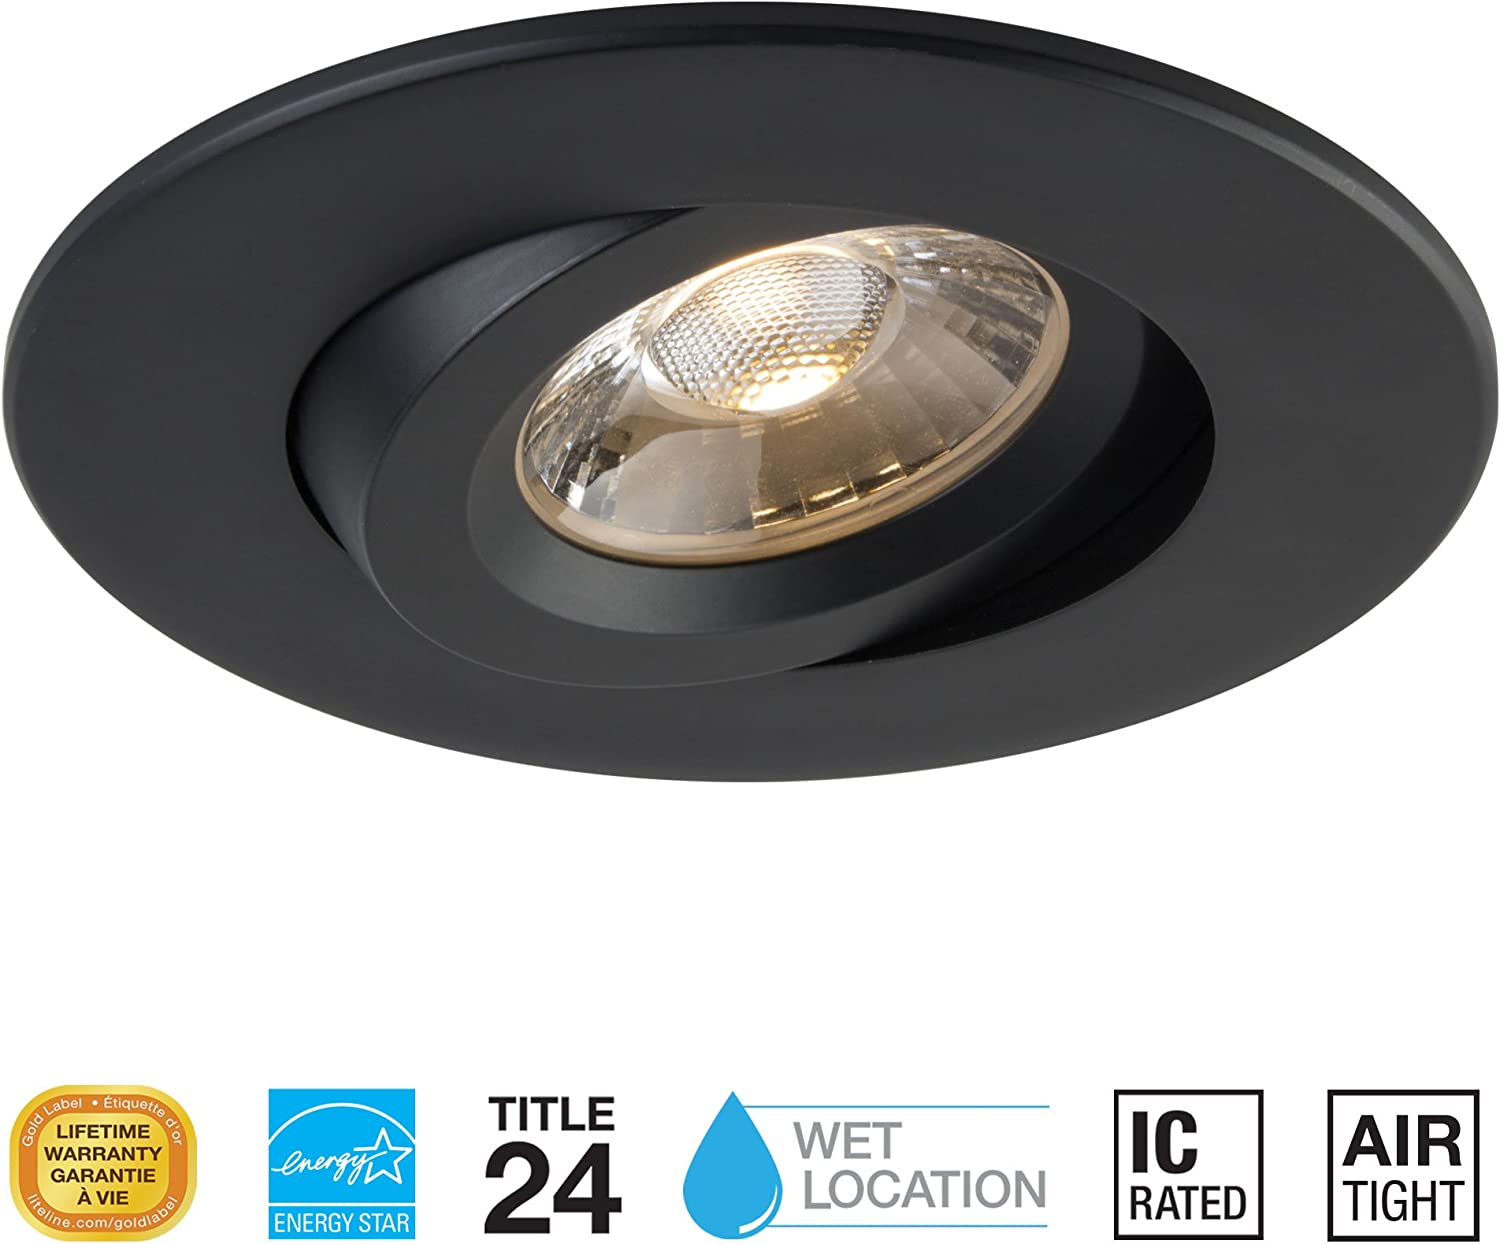 Liteline 4  Luna LED Round Gimbal Fixture, 12W, 2700K, 90CRI, dimmable. Suitable for Insulated Ceilings. (Black, 4000K)